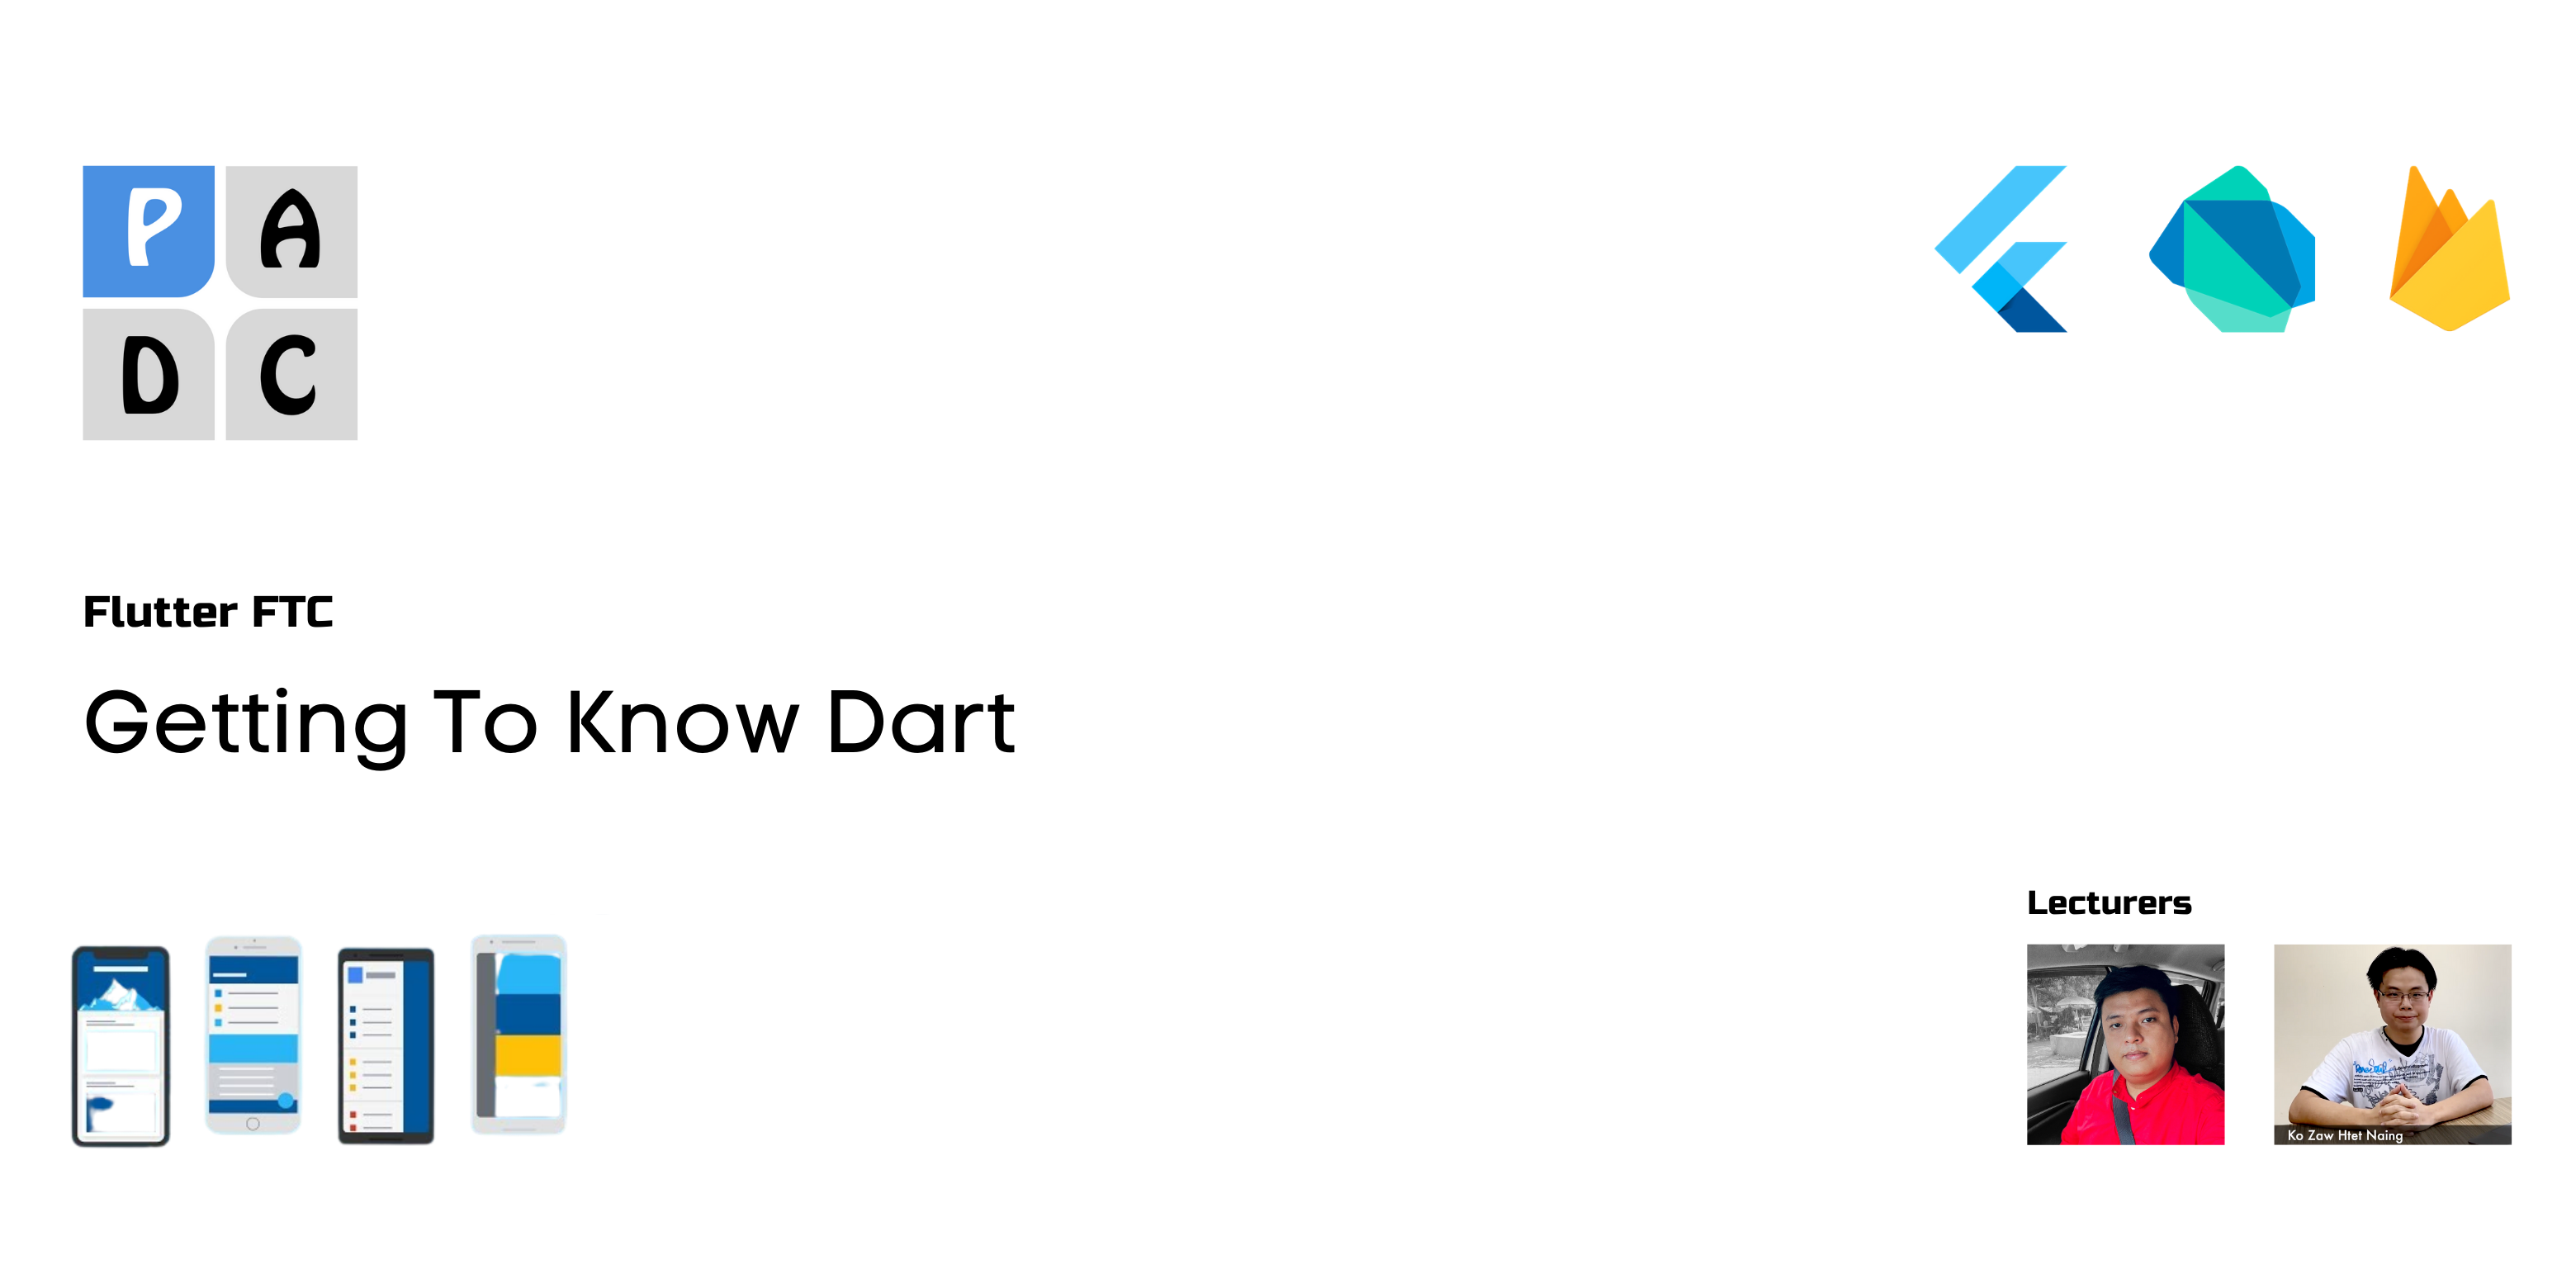 Getting To Know Dart